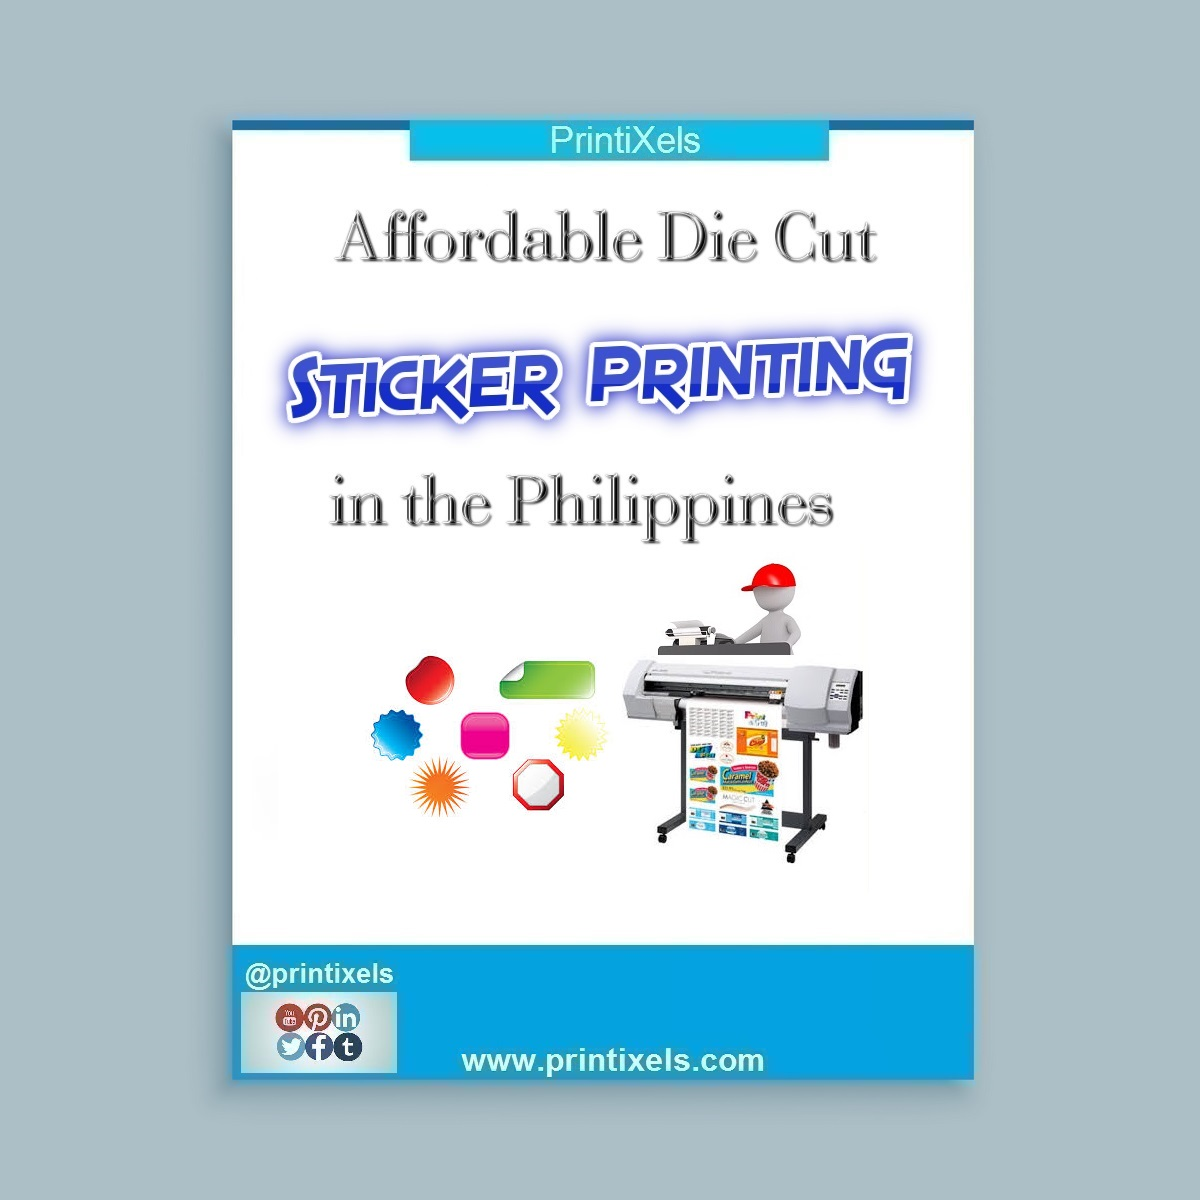 Affordable Die Cut Sticker Printing in the Philippines